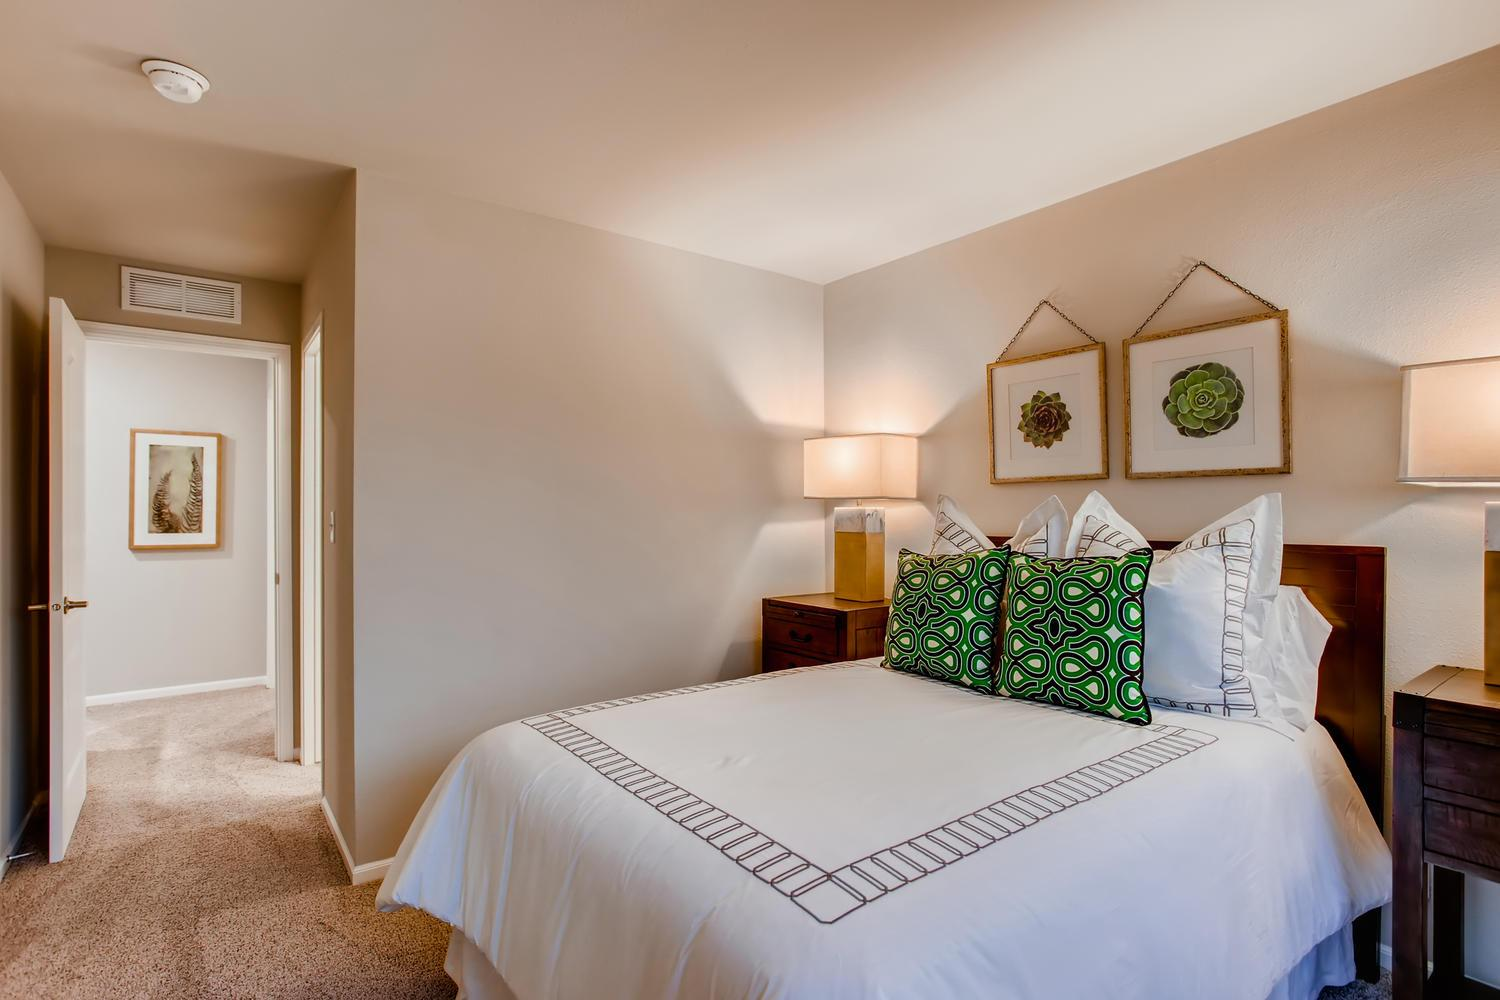 Bedroom featured in the Pollux I By RichfieldHomes in Fort Collins-Loveland, CO